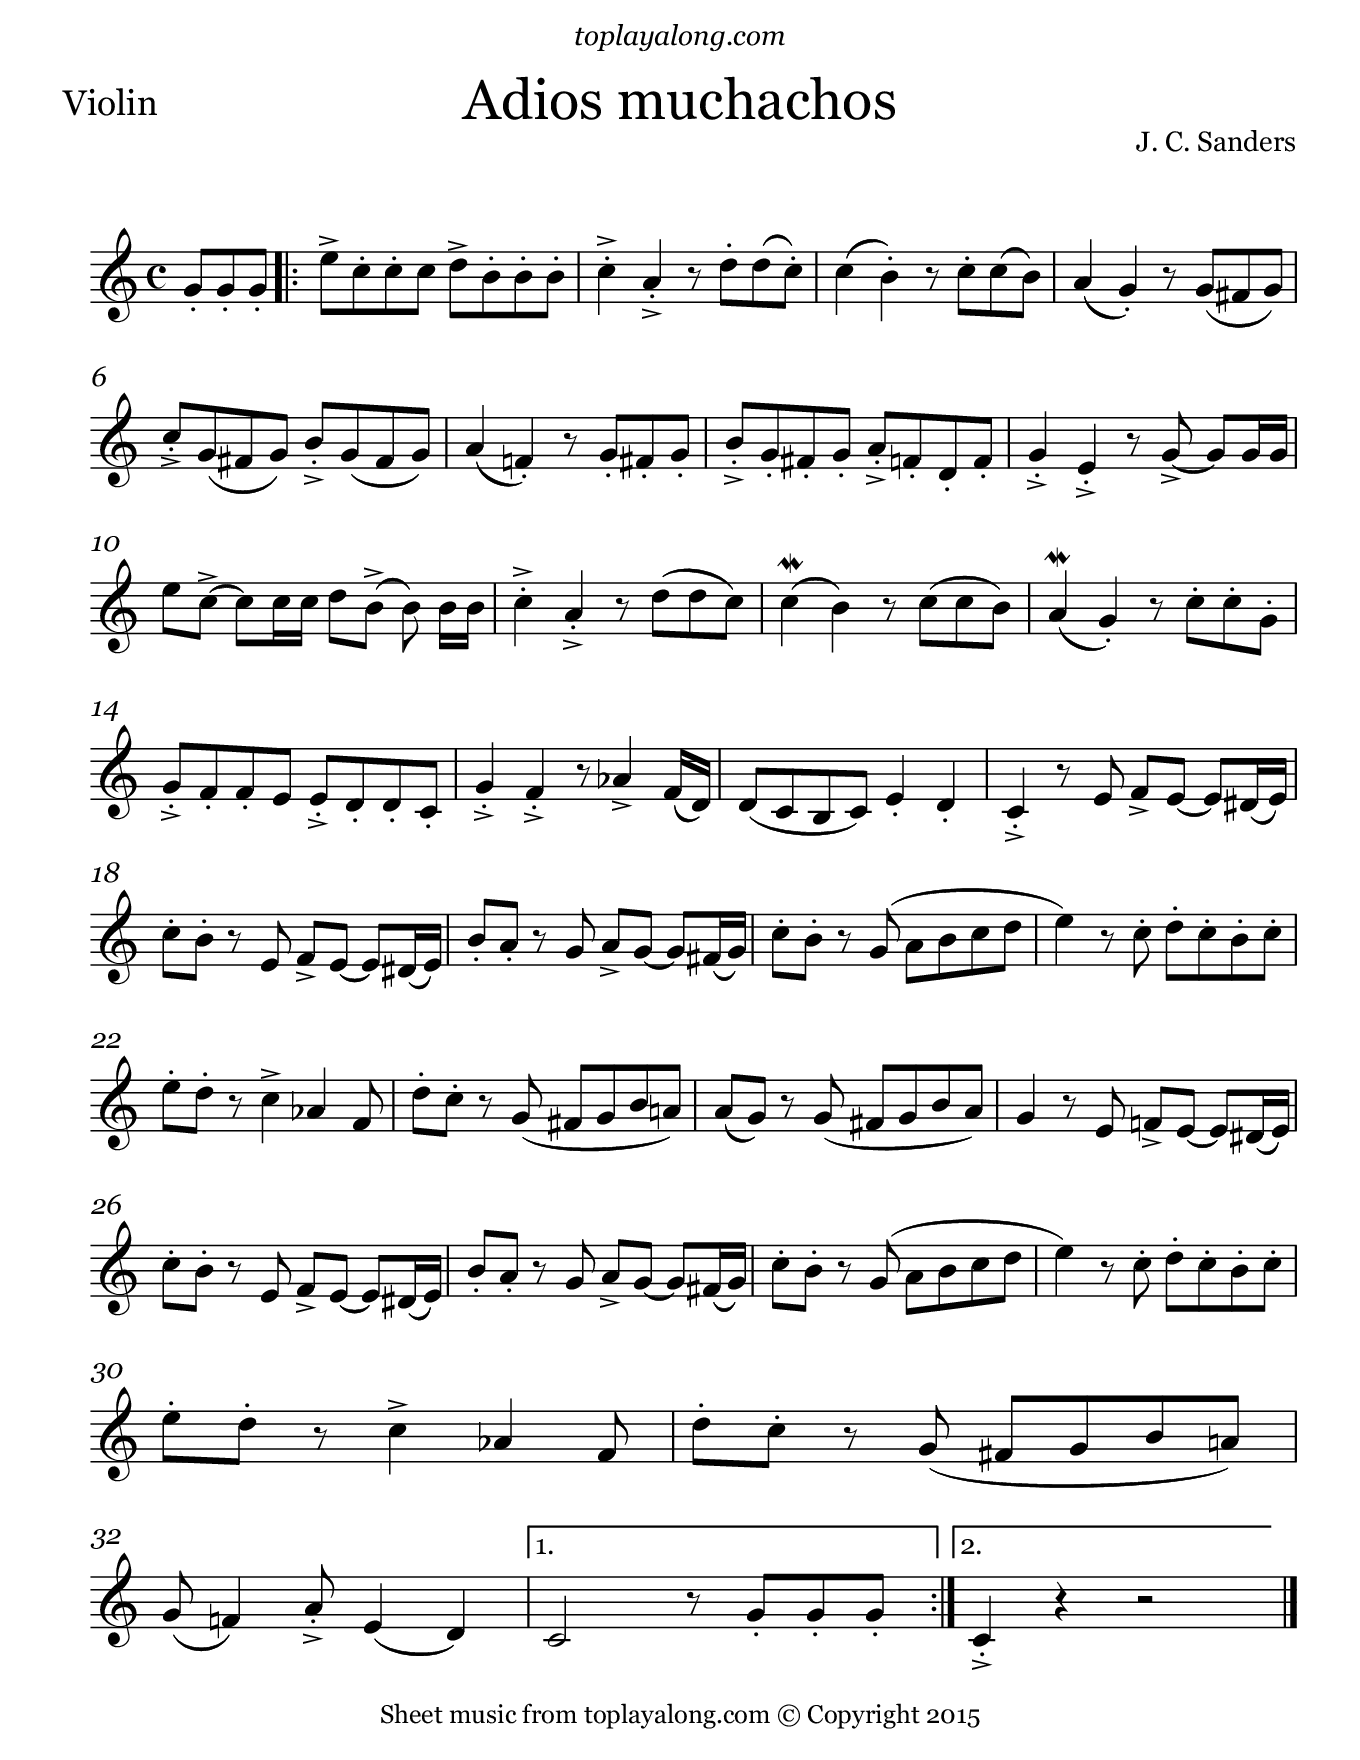 Adios Muchachos by Sanders. Sheet music for Violin, page 1.